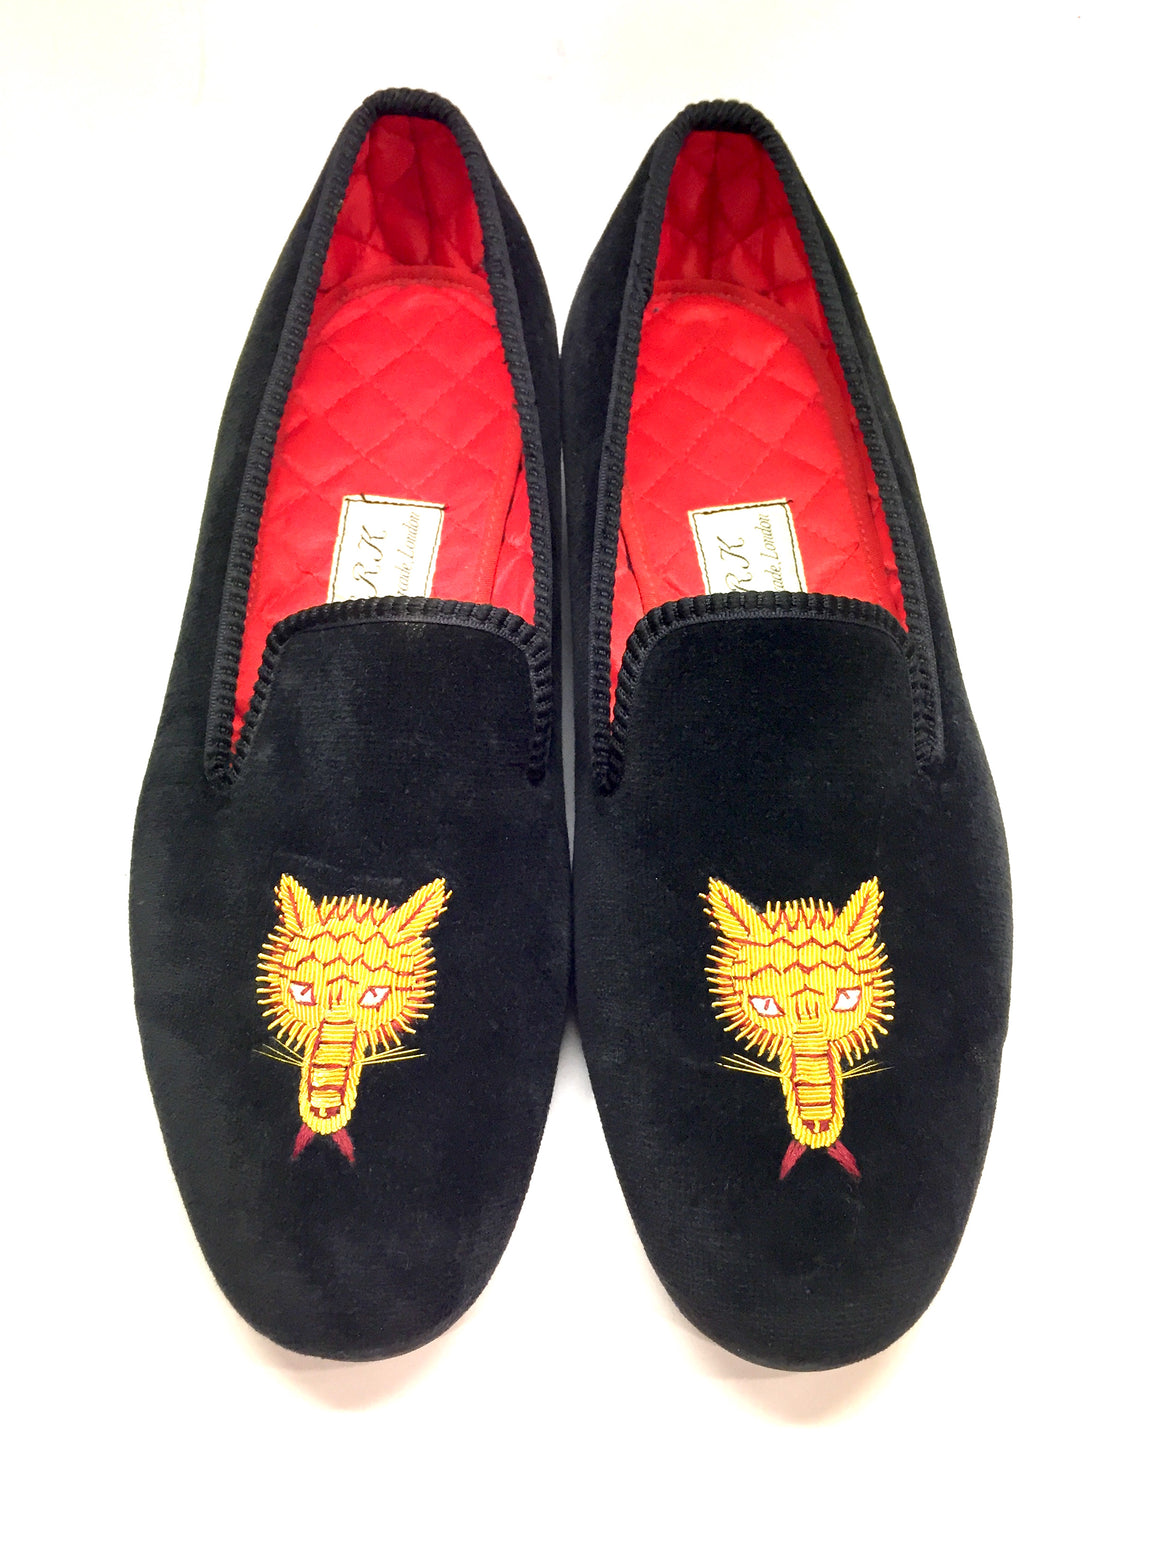 BERK BURLINGTON ARCADE Black Velvet Gold Cat Hand-Made Men's Slippers Shoes Sz8.5